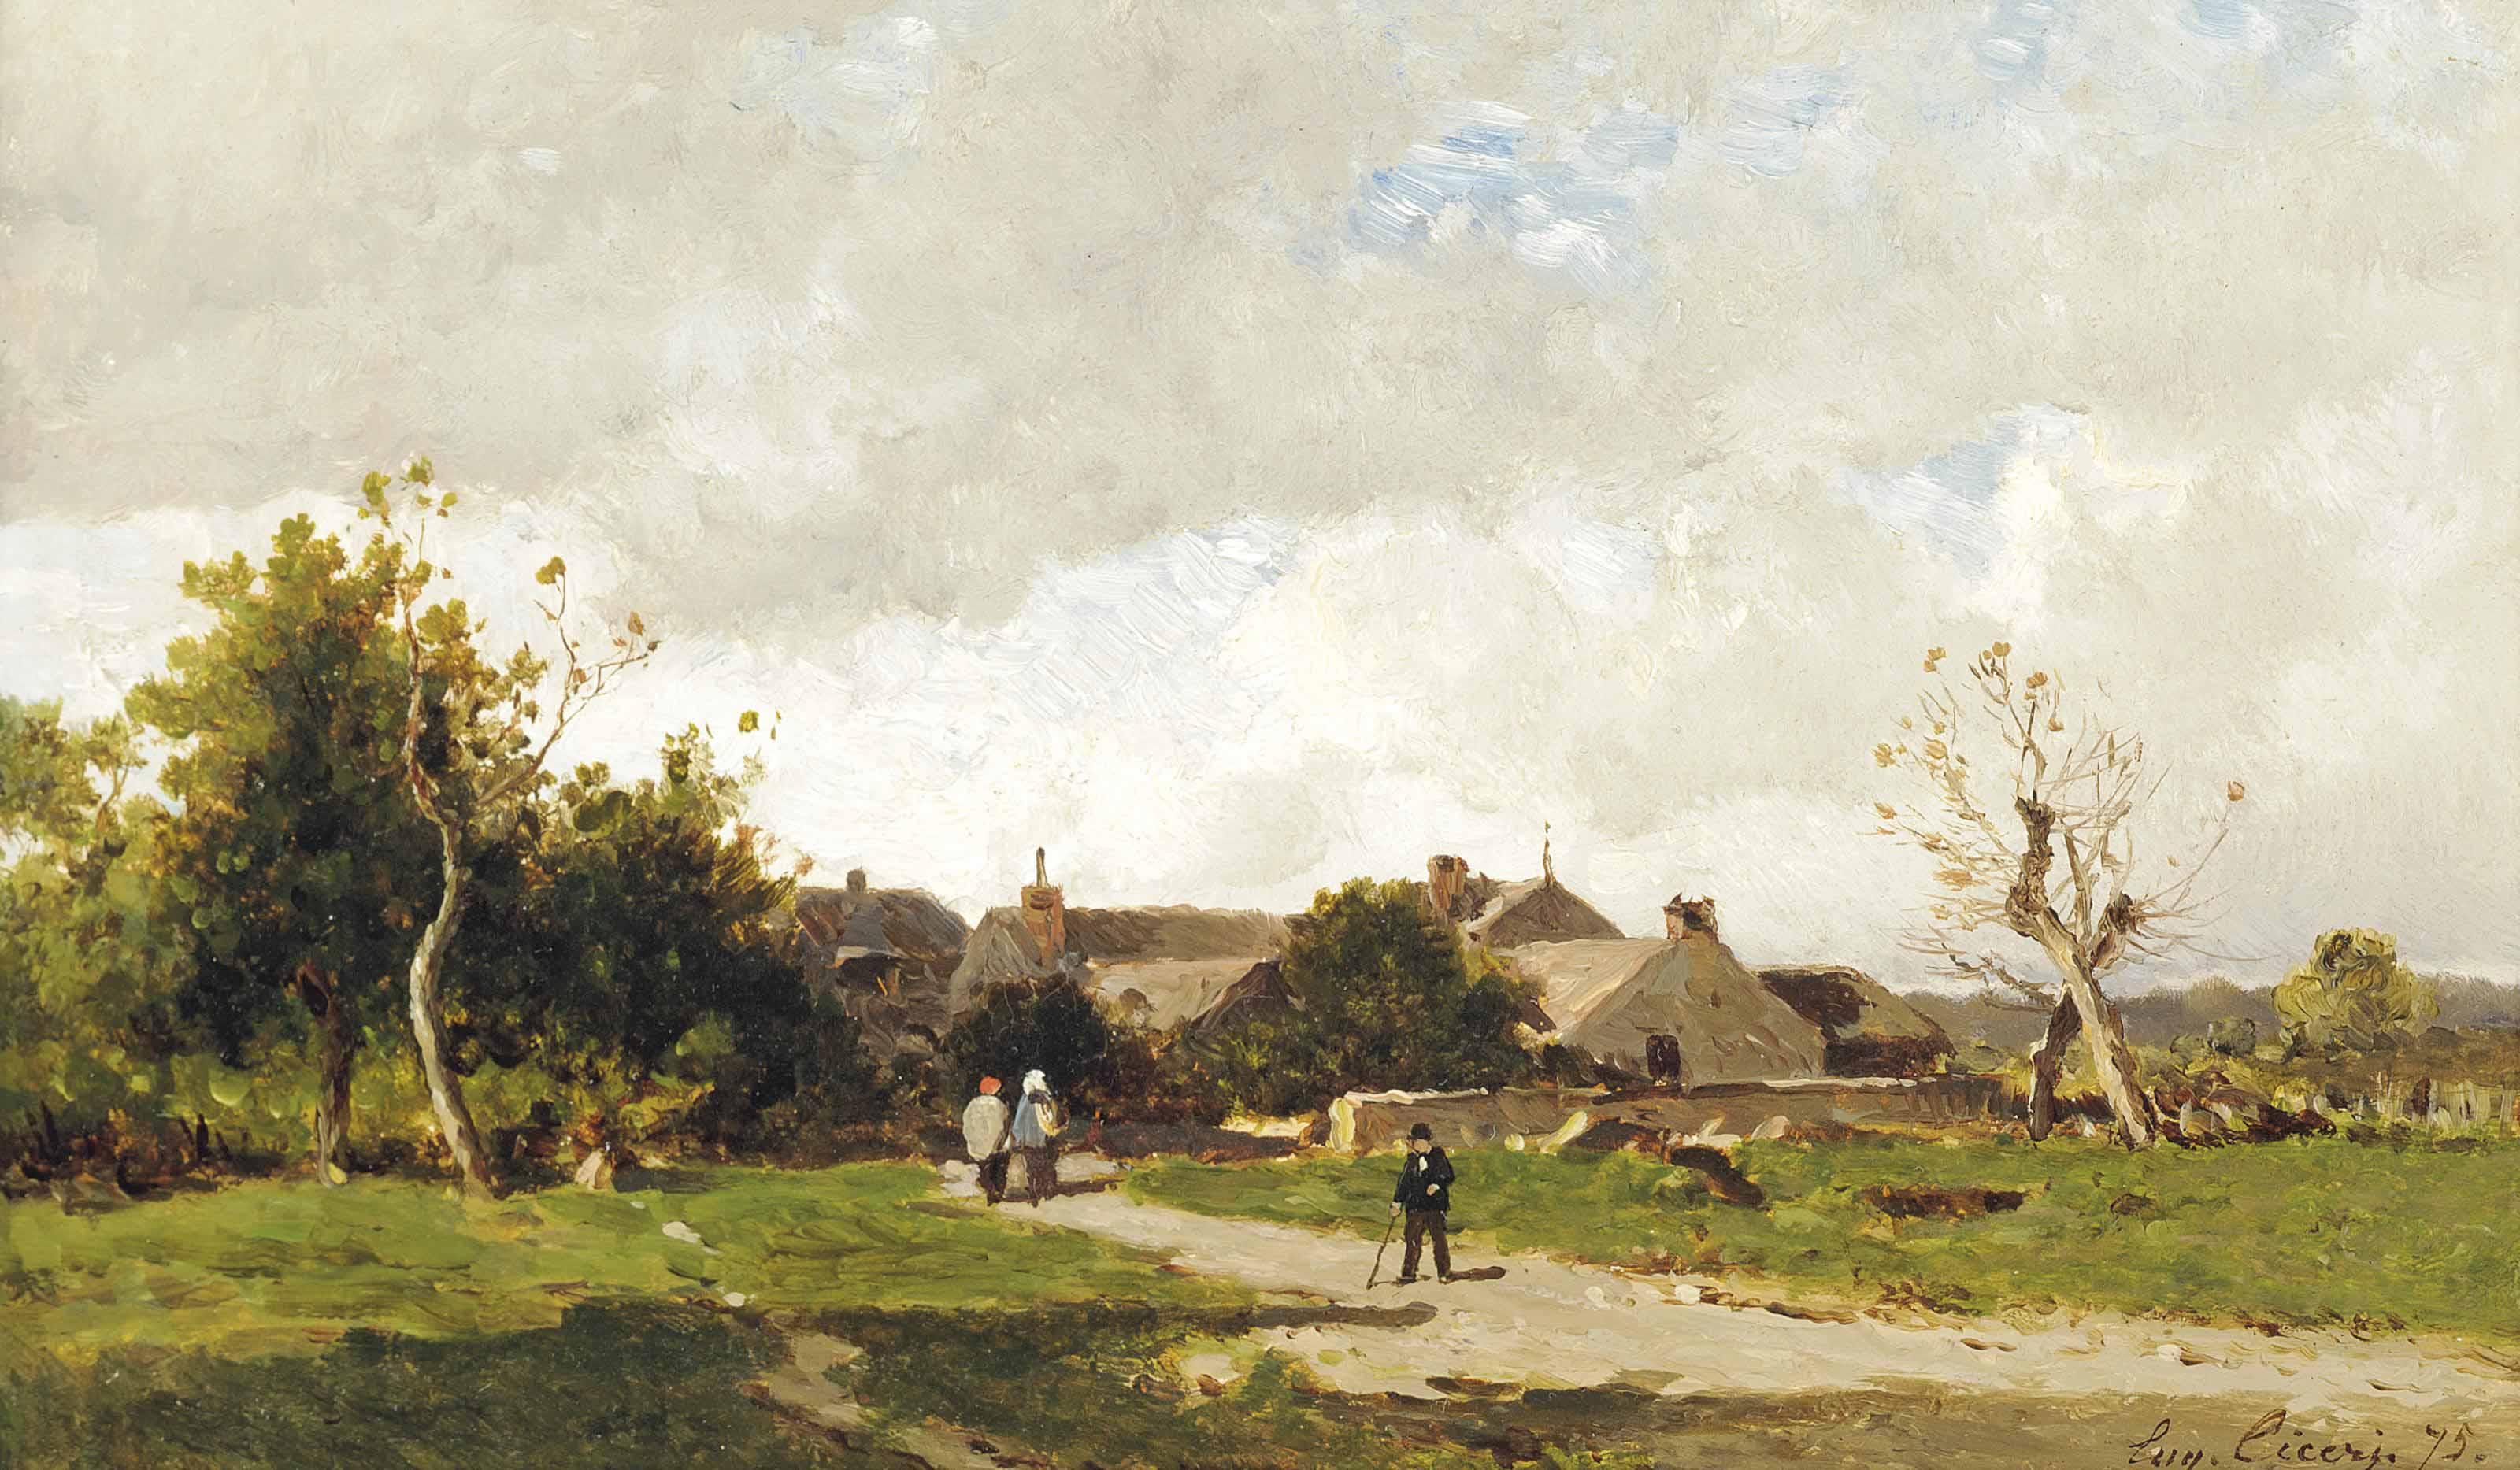 Figures on the outskirts of a village